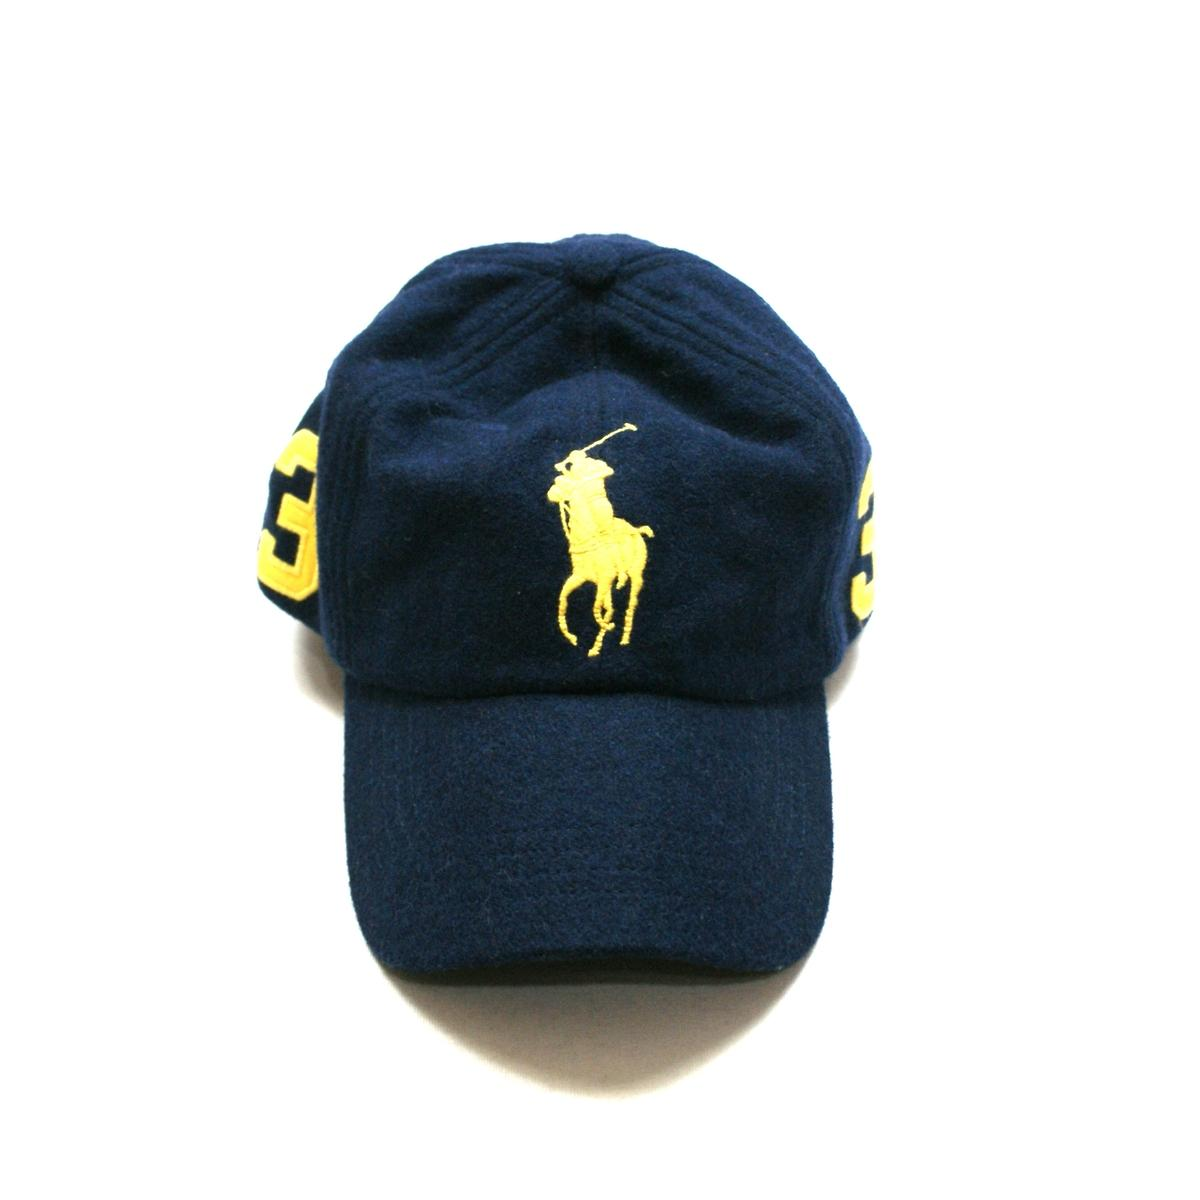 ac2b0888 Home · Polo Ralph Lauren · Classics Signature Big Pony Navy Blue Wool Cap/  Hat MCMLXVII. CLICK THUMBNAIL TO ZOOM. Found ...